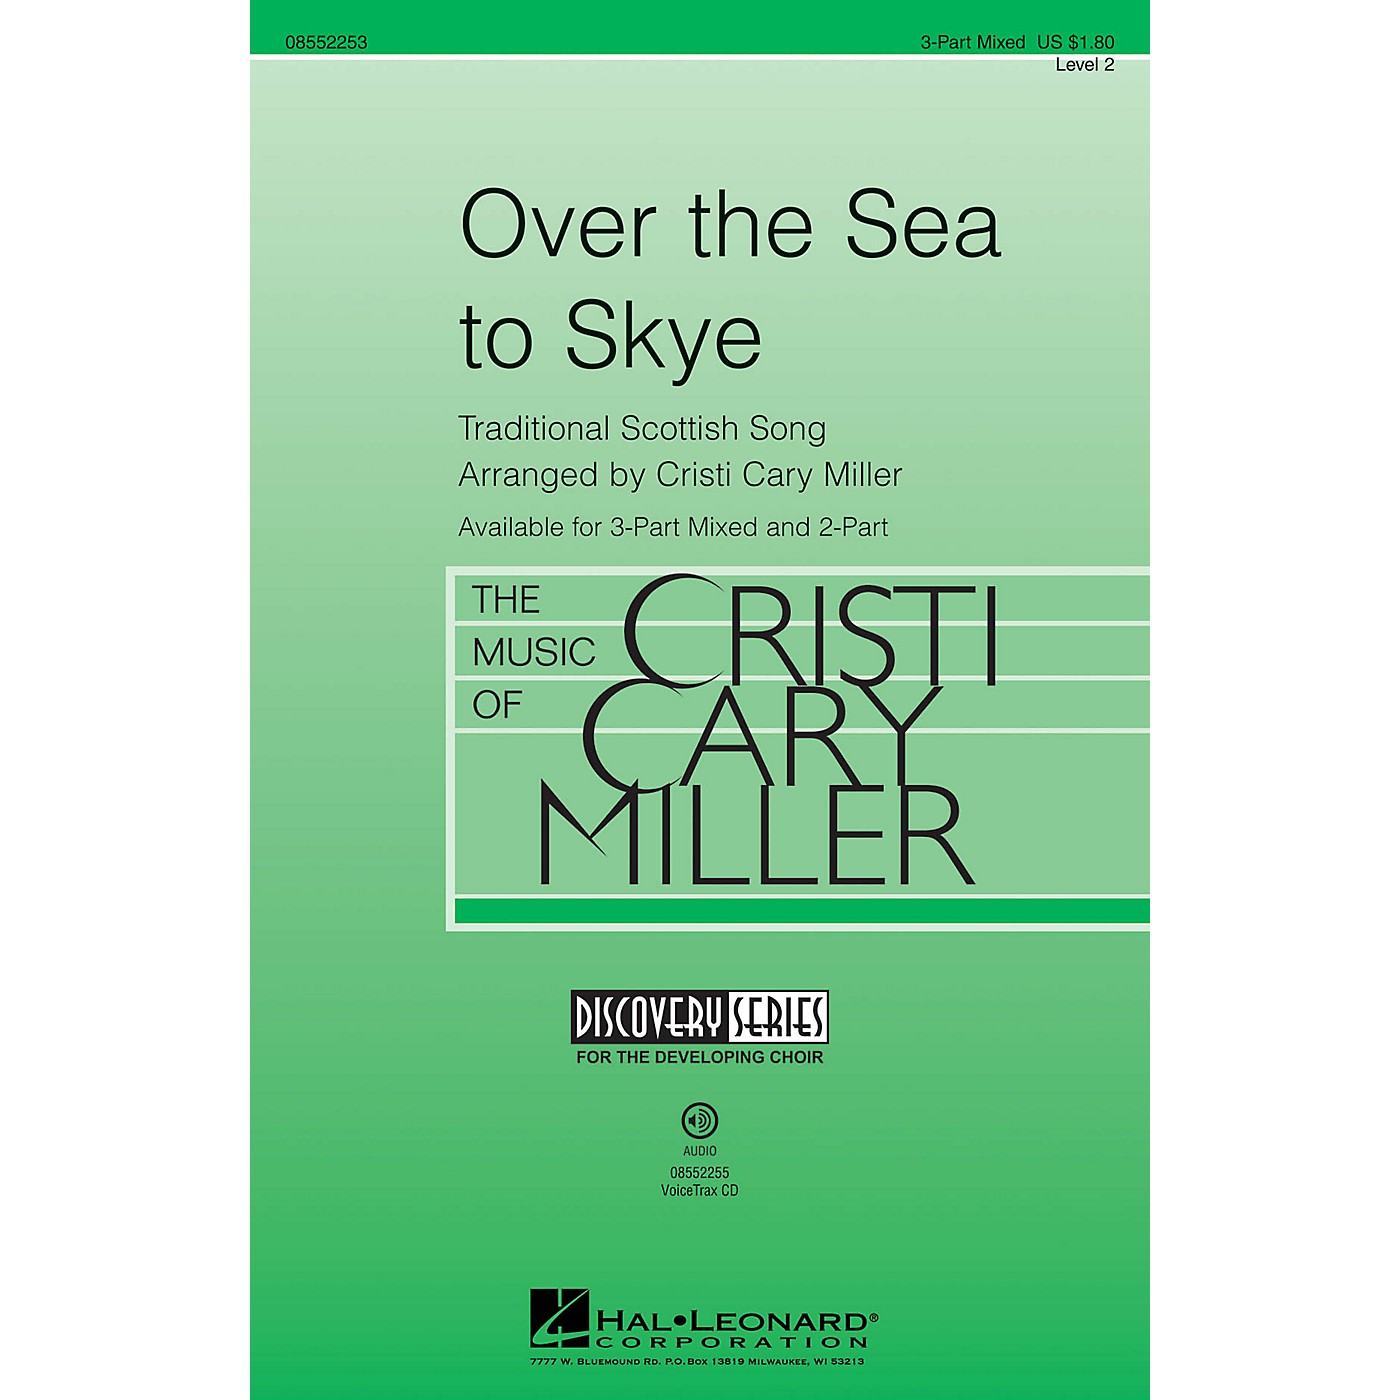 Hal Leonard Over the Sea to Skye (Discovery Level 2) 2-Part Arranged by Cristi Cary Miller thumbnail